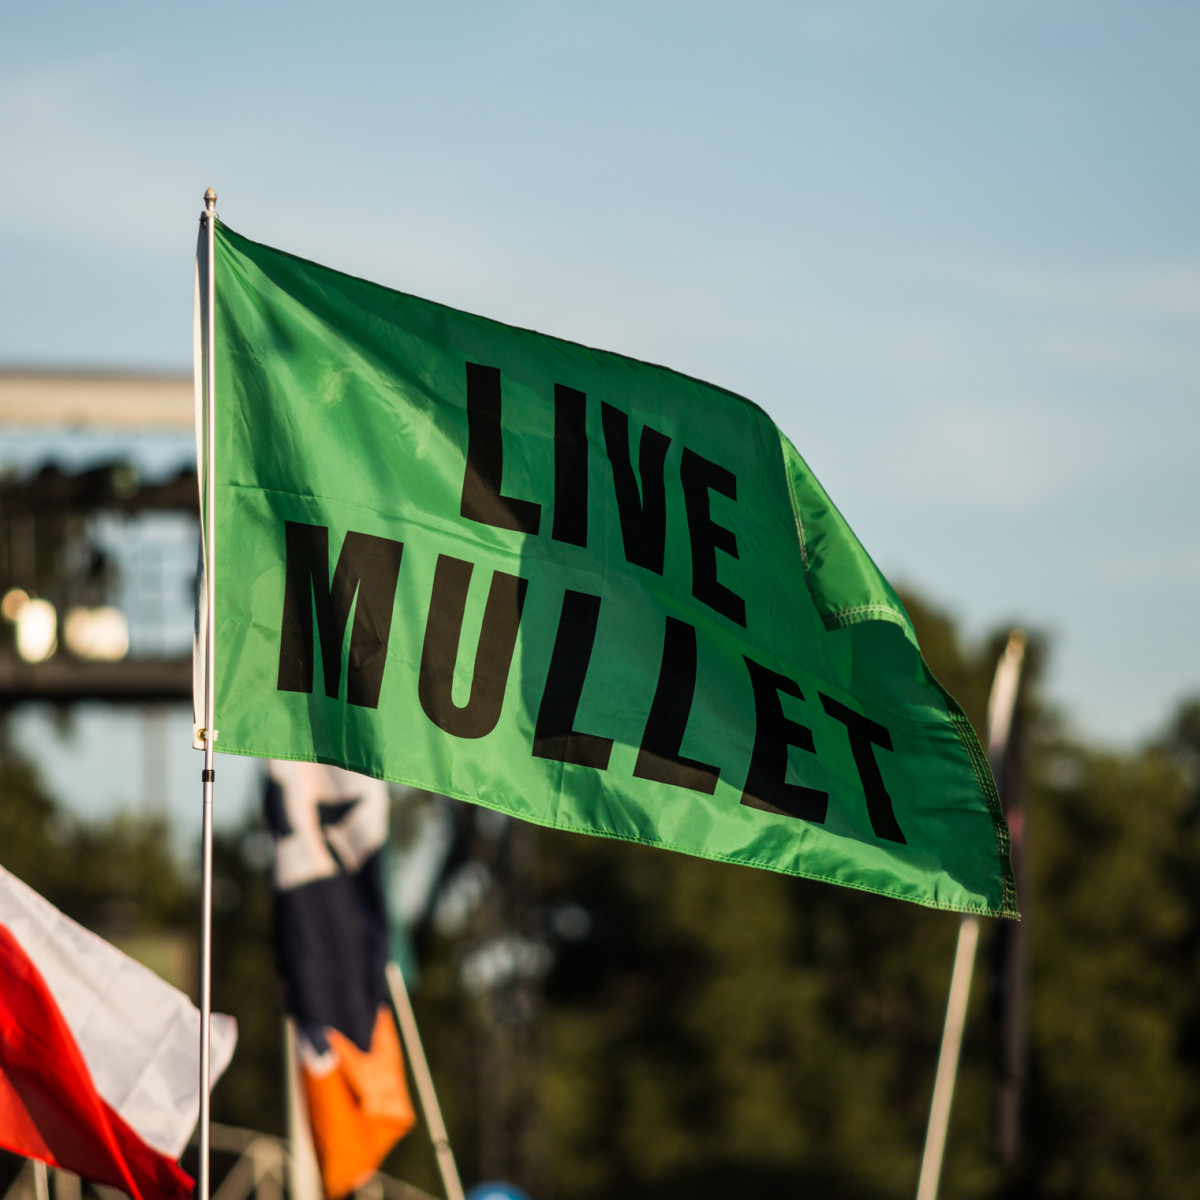 Austin City Limits Festival ACL 2015 Weekend One Best Signs Best Flags Live Mullet